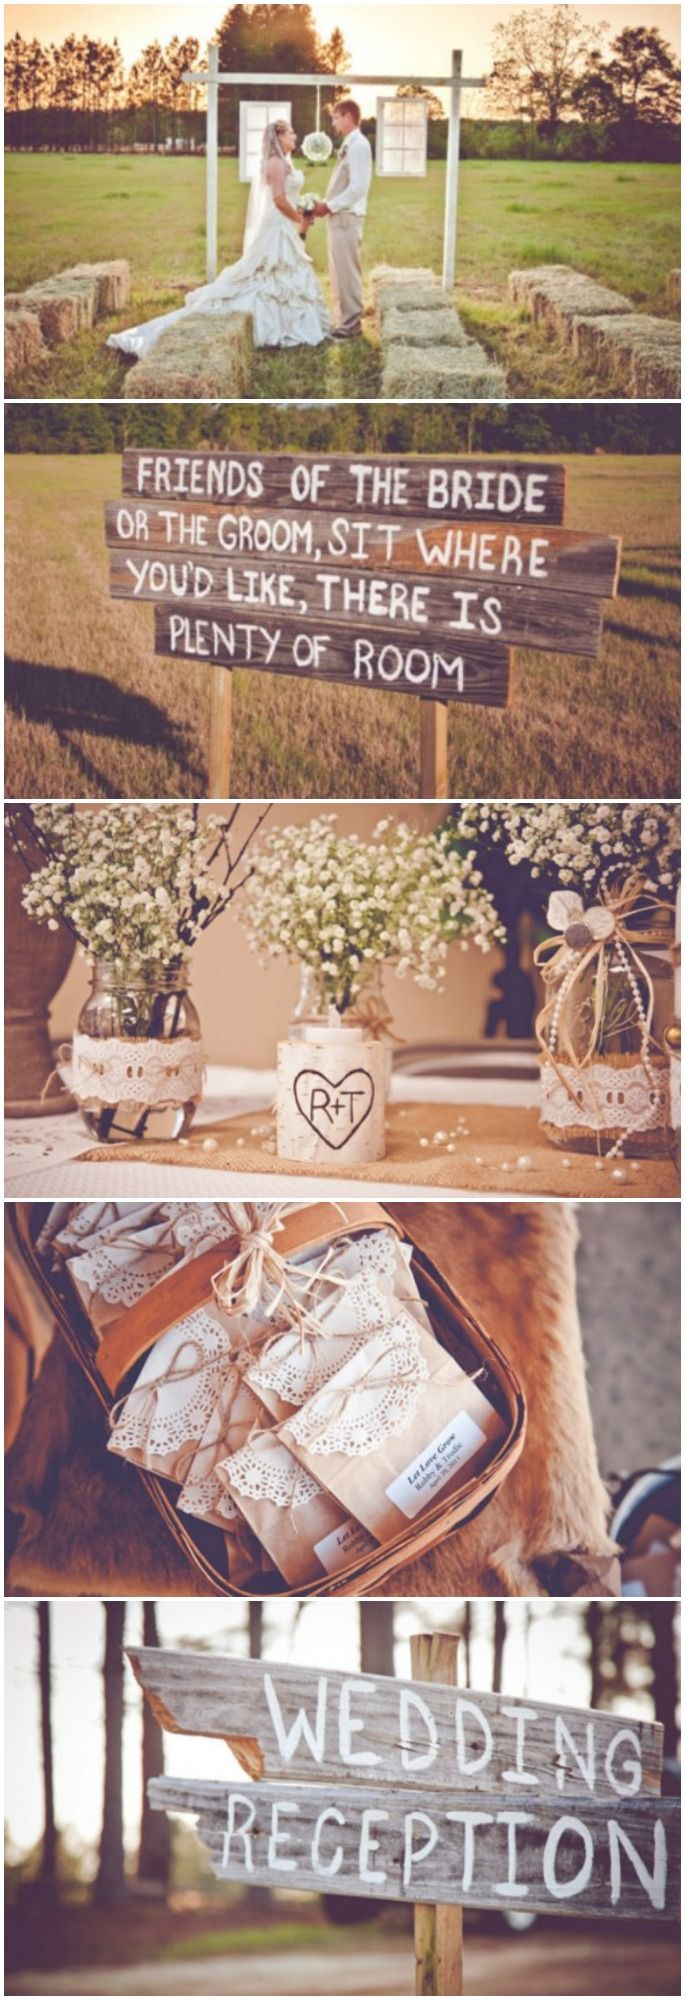 @Megan Ward Ward Ward Ward Wiggins Not sure how I feel about hay bales, although maybe you could save on chair rental?? I also really like all these wooden signs, so neat! Burlap inspired country wedding